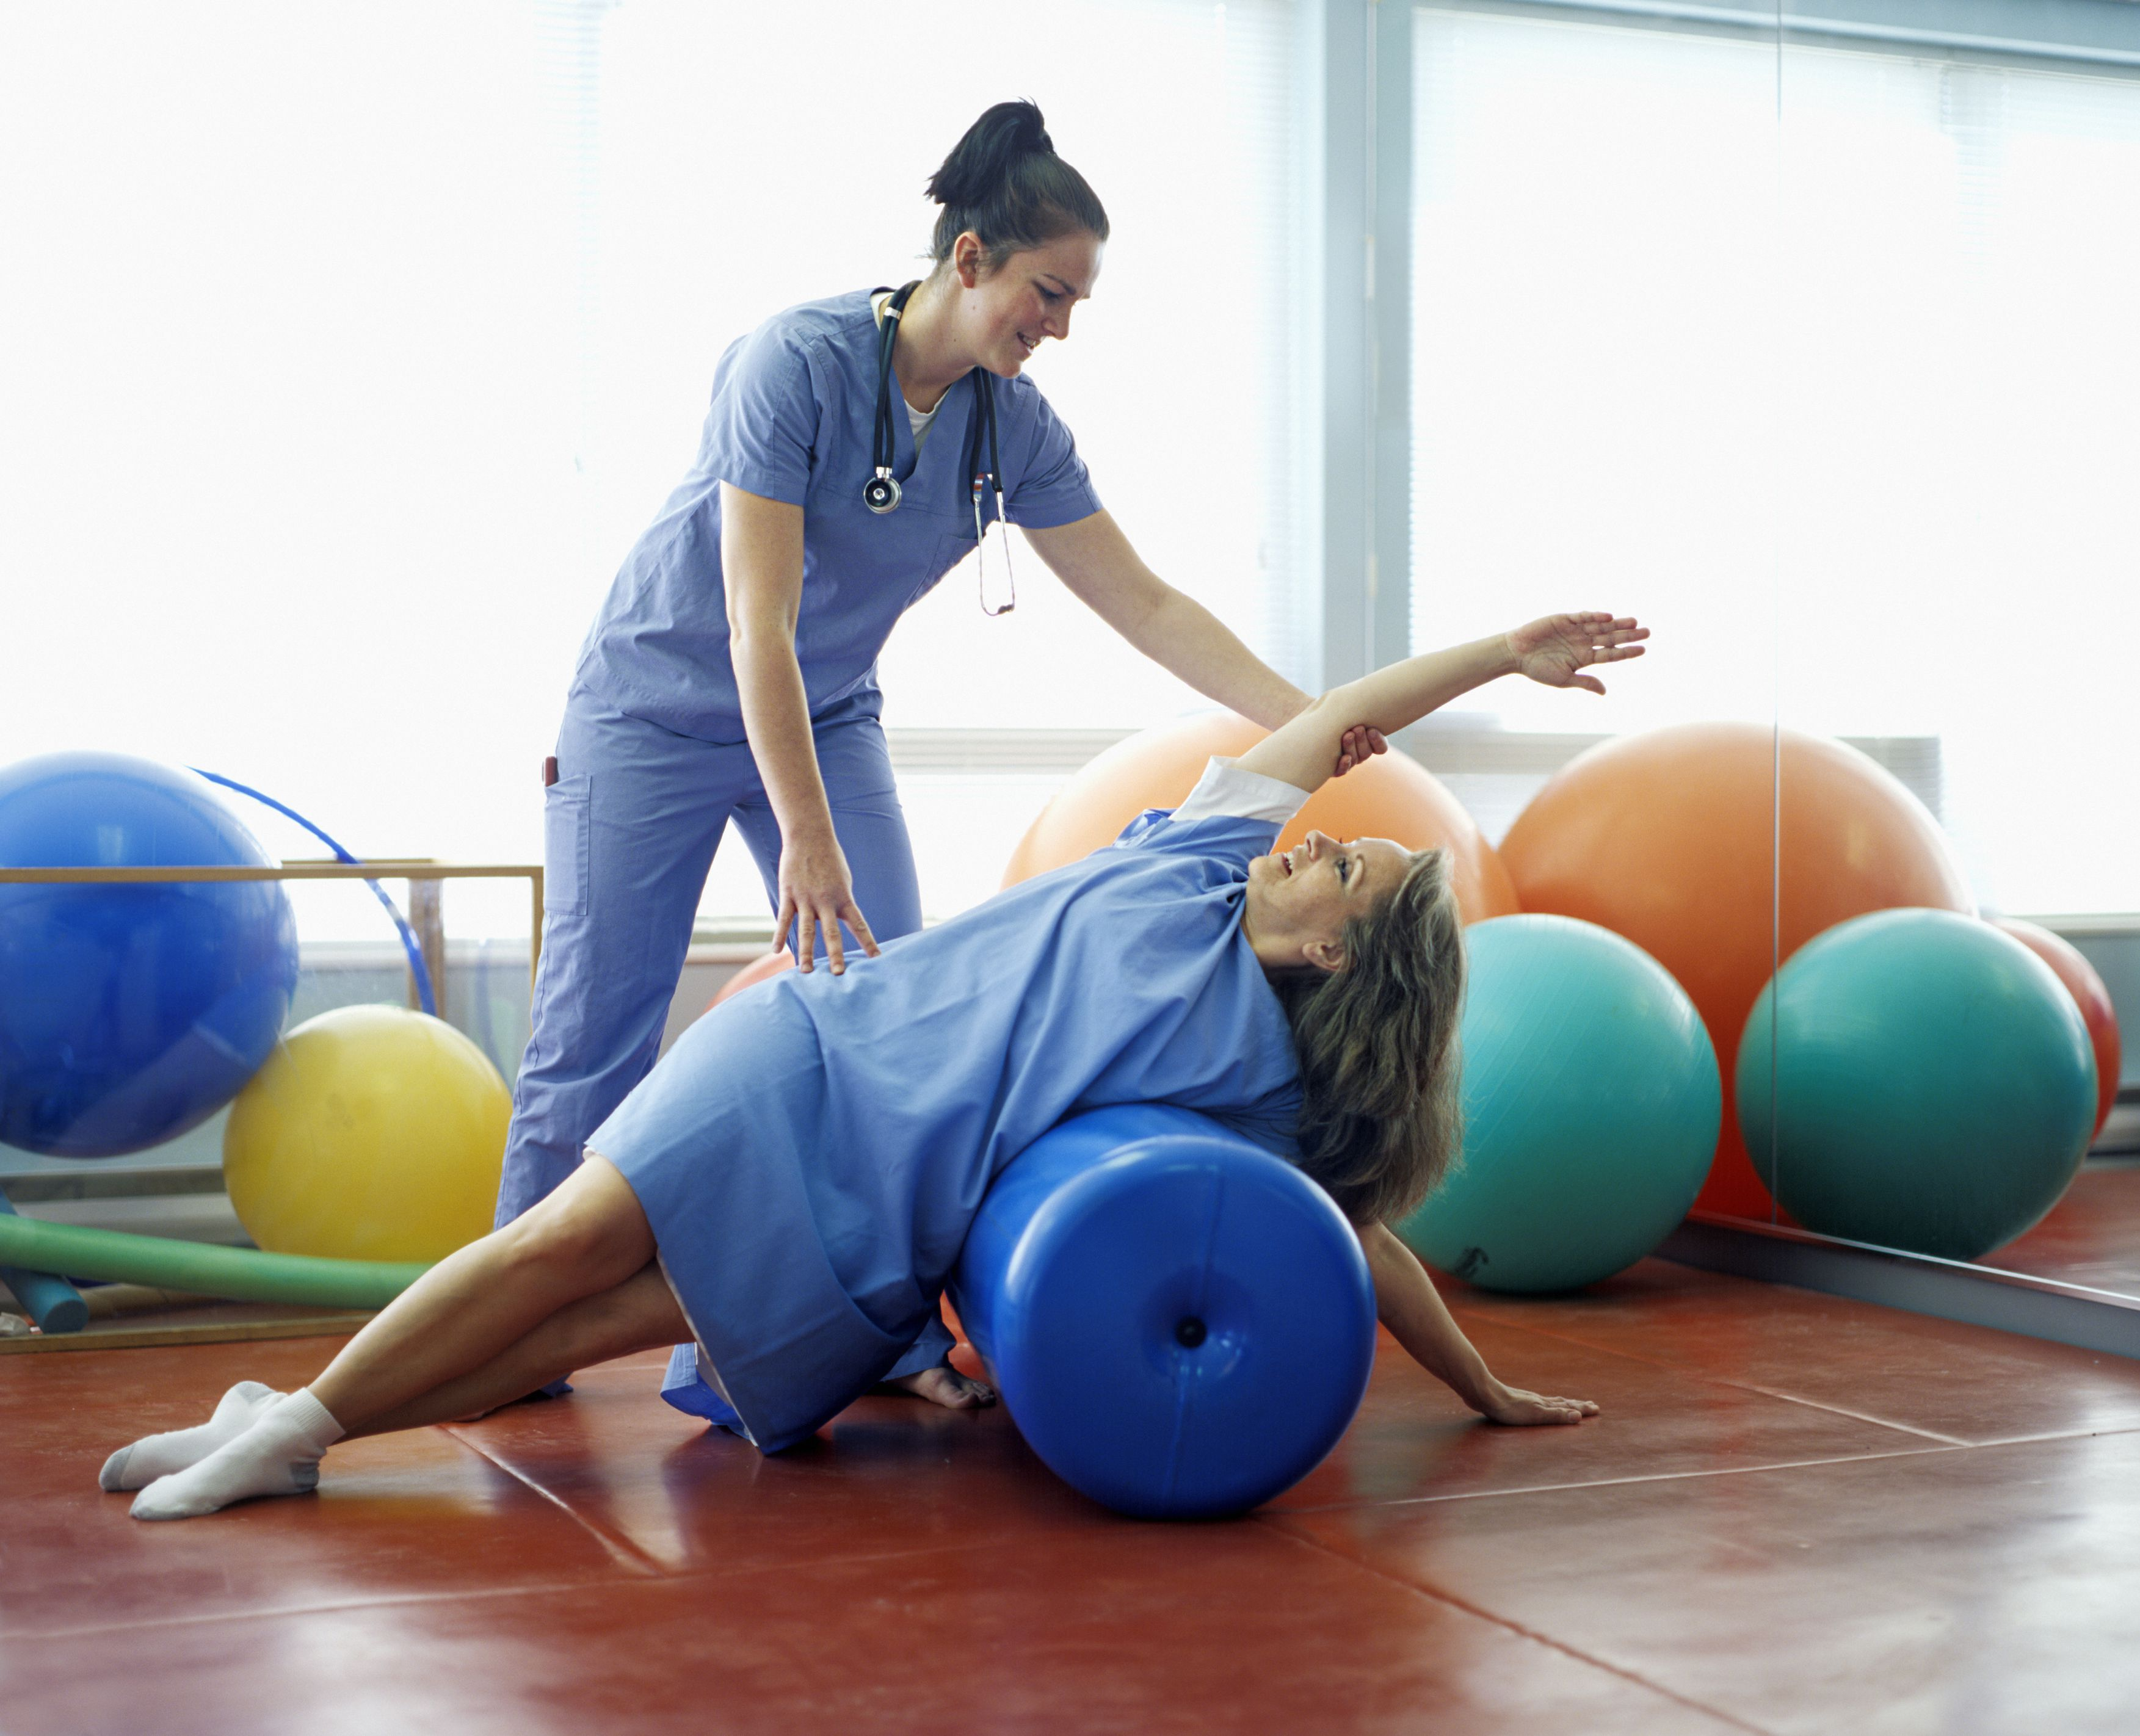 Career in physical therapy - Career In Physical Therapy 34